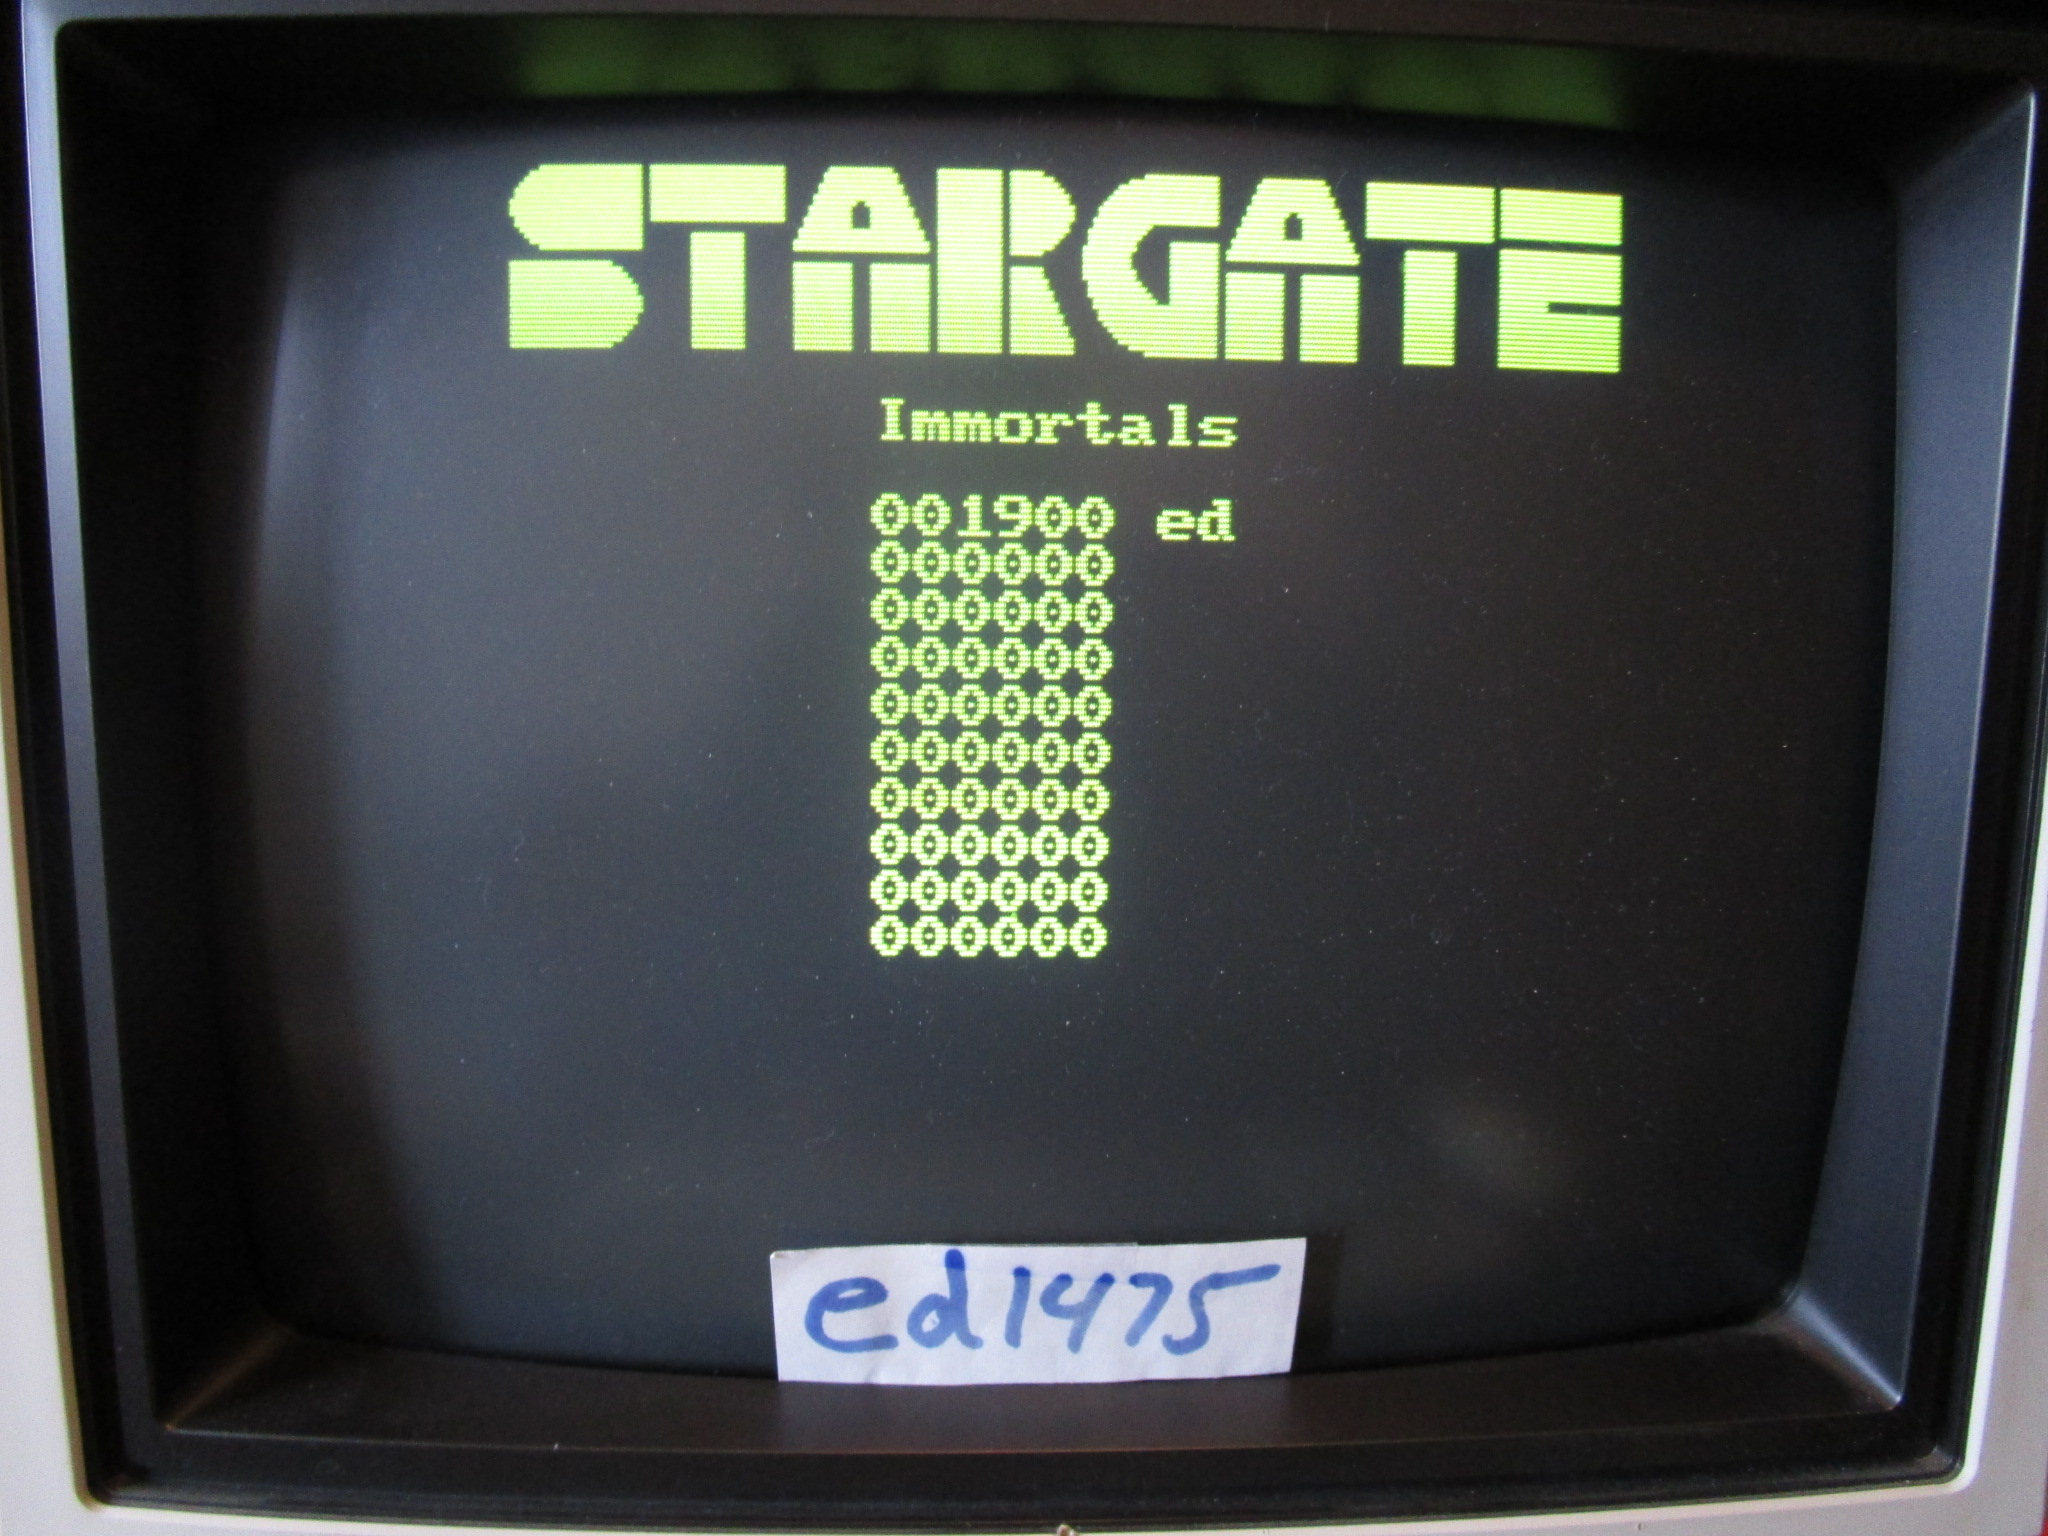 ed1475: Stargate (PC) 1,900 points on 2015-02-03 23:58:33